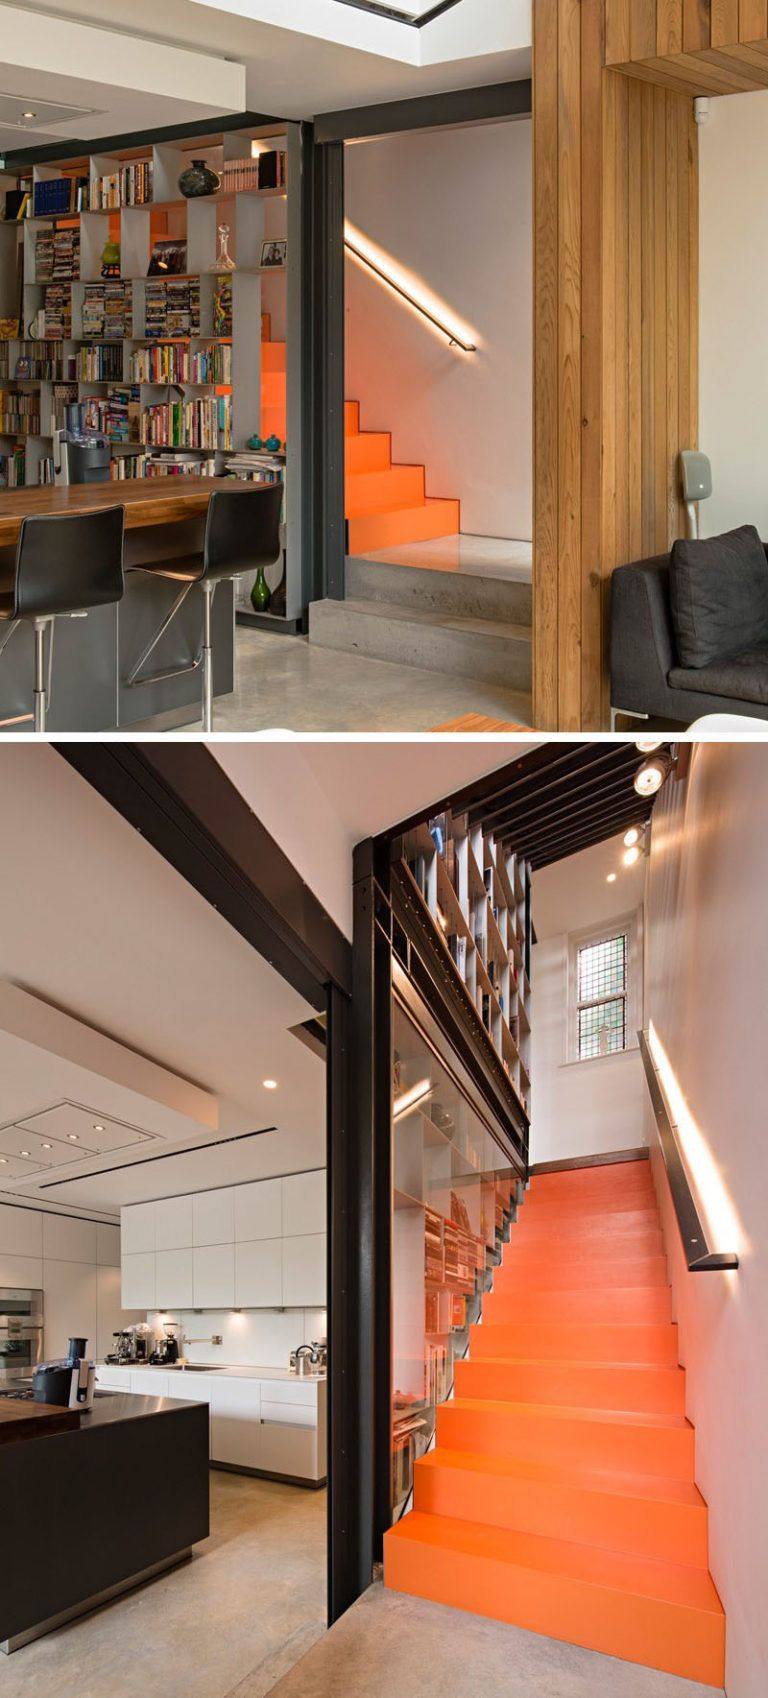 9 Stylish Staircases With Bookshelves As Safety Rails // The Bright Orange  Stairs And The Open Bookshelves Run The Entire Height Of This House.